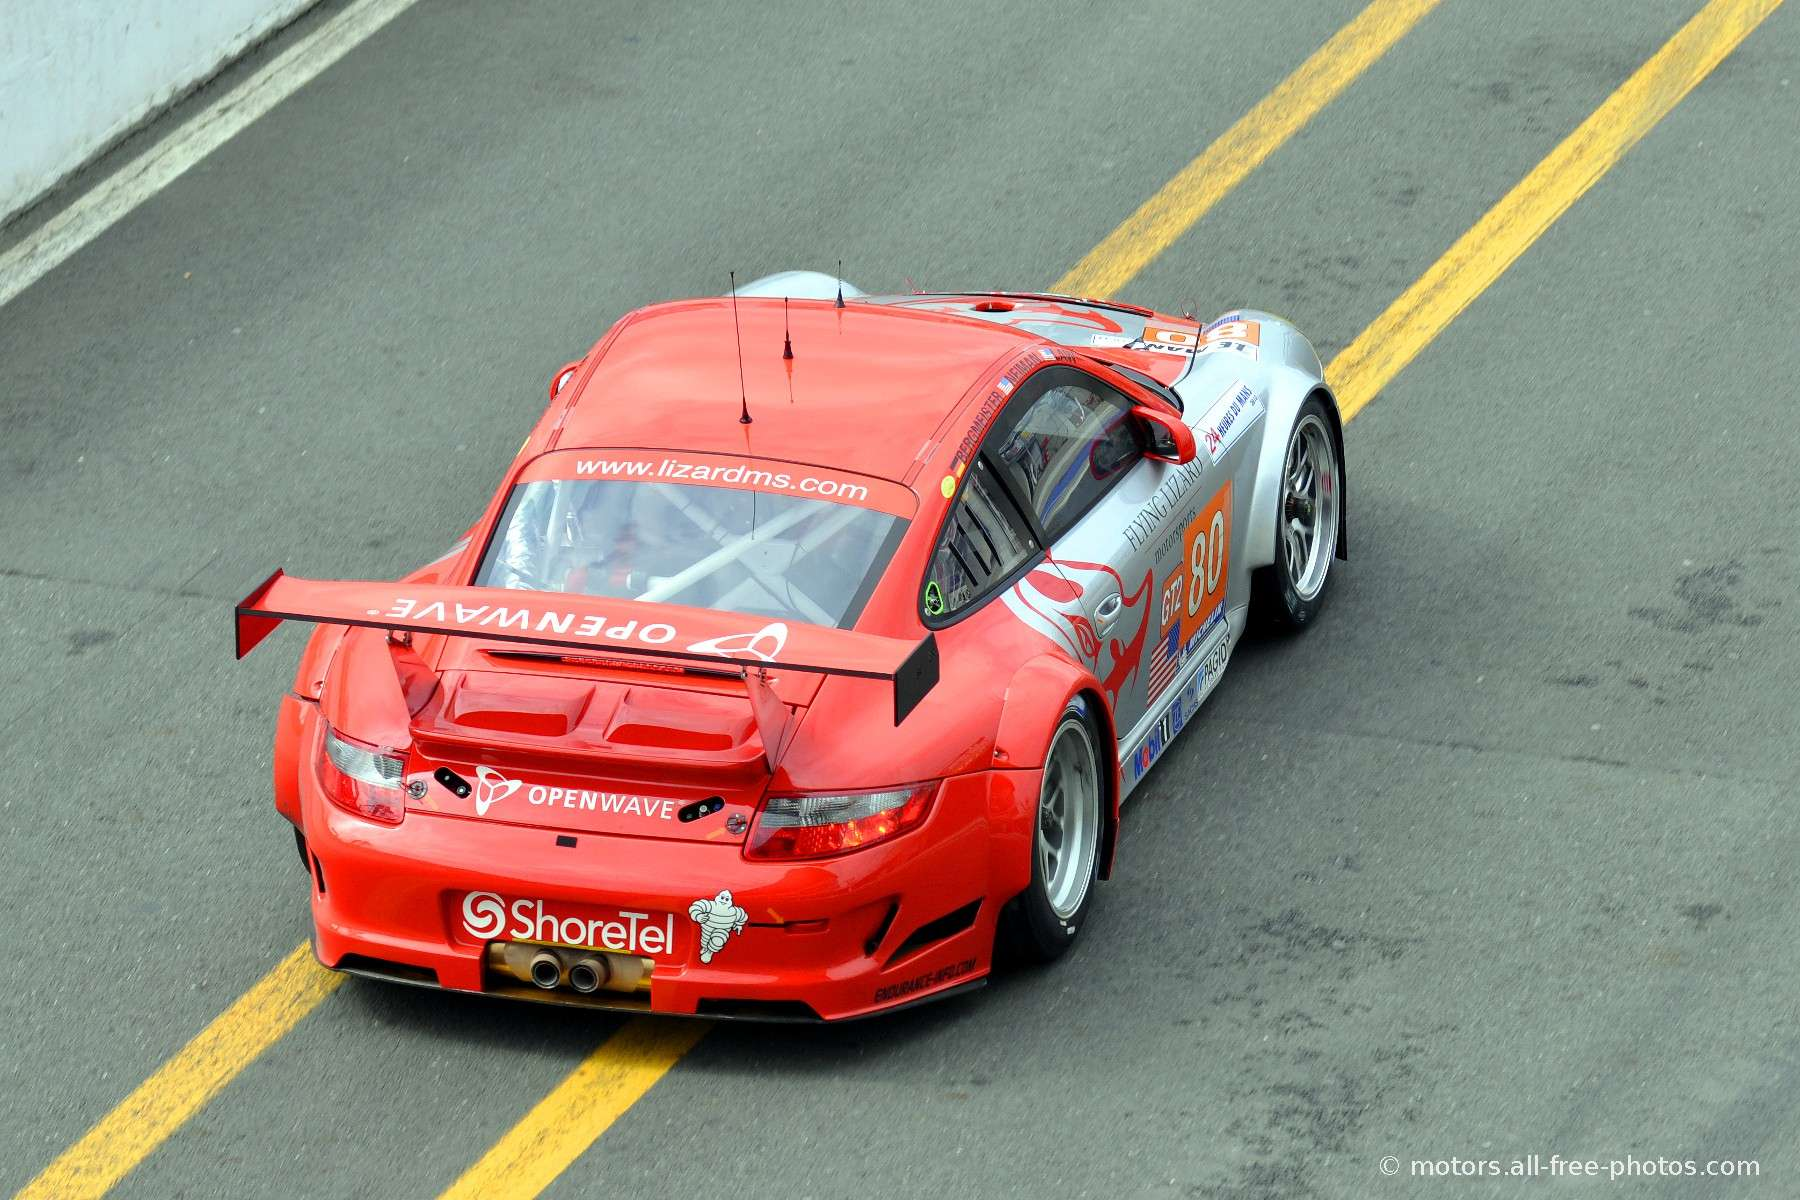 Porsche 997 GT3 RSR - Team Flying Lizard Motorsports